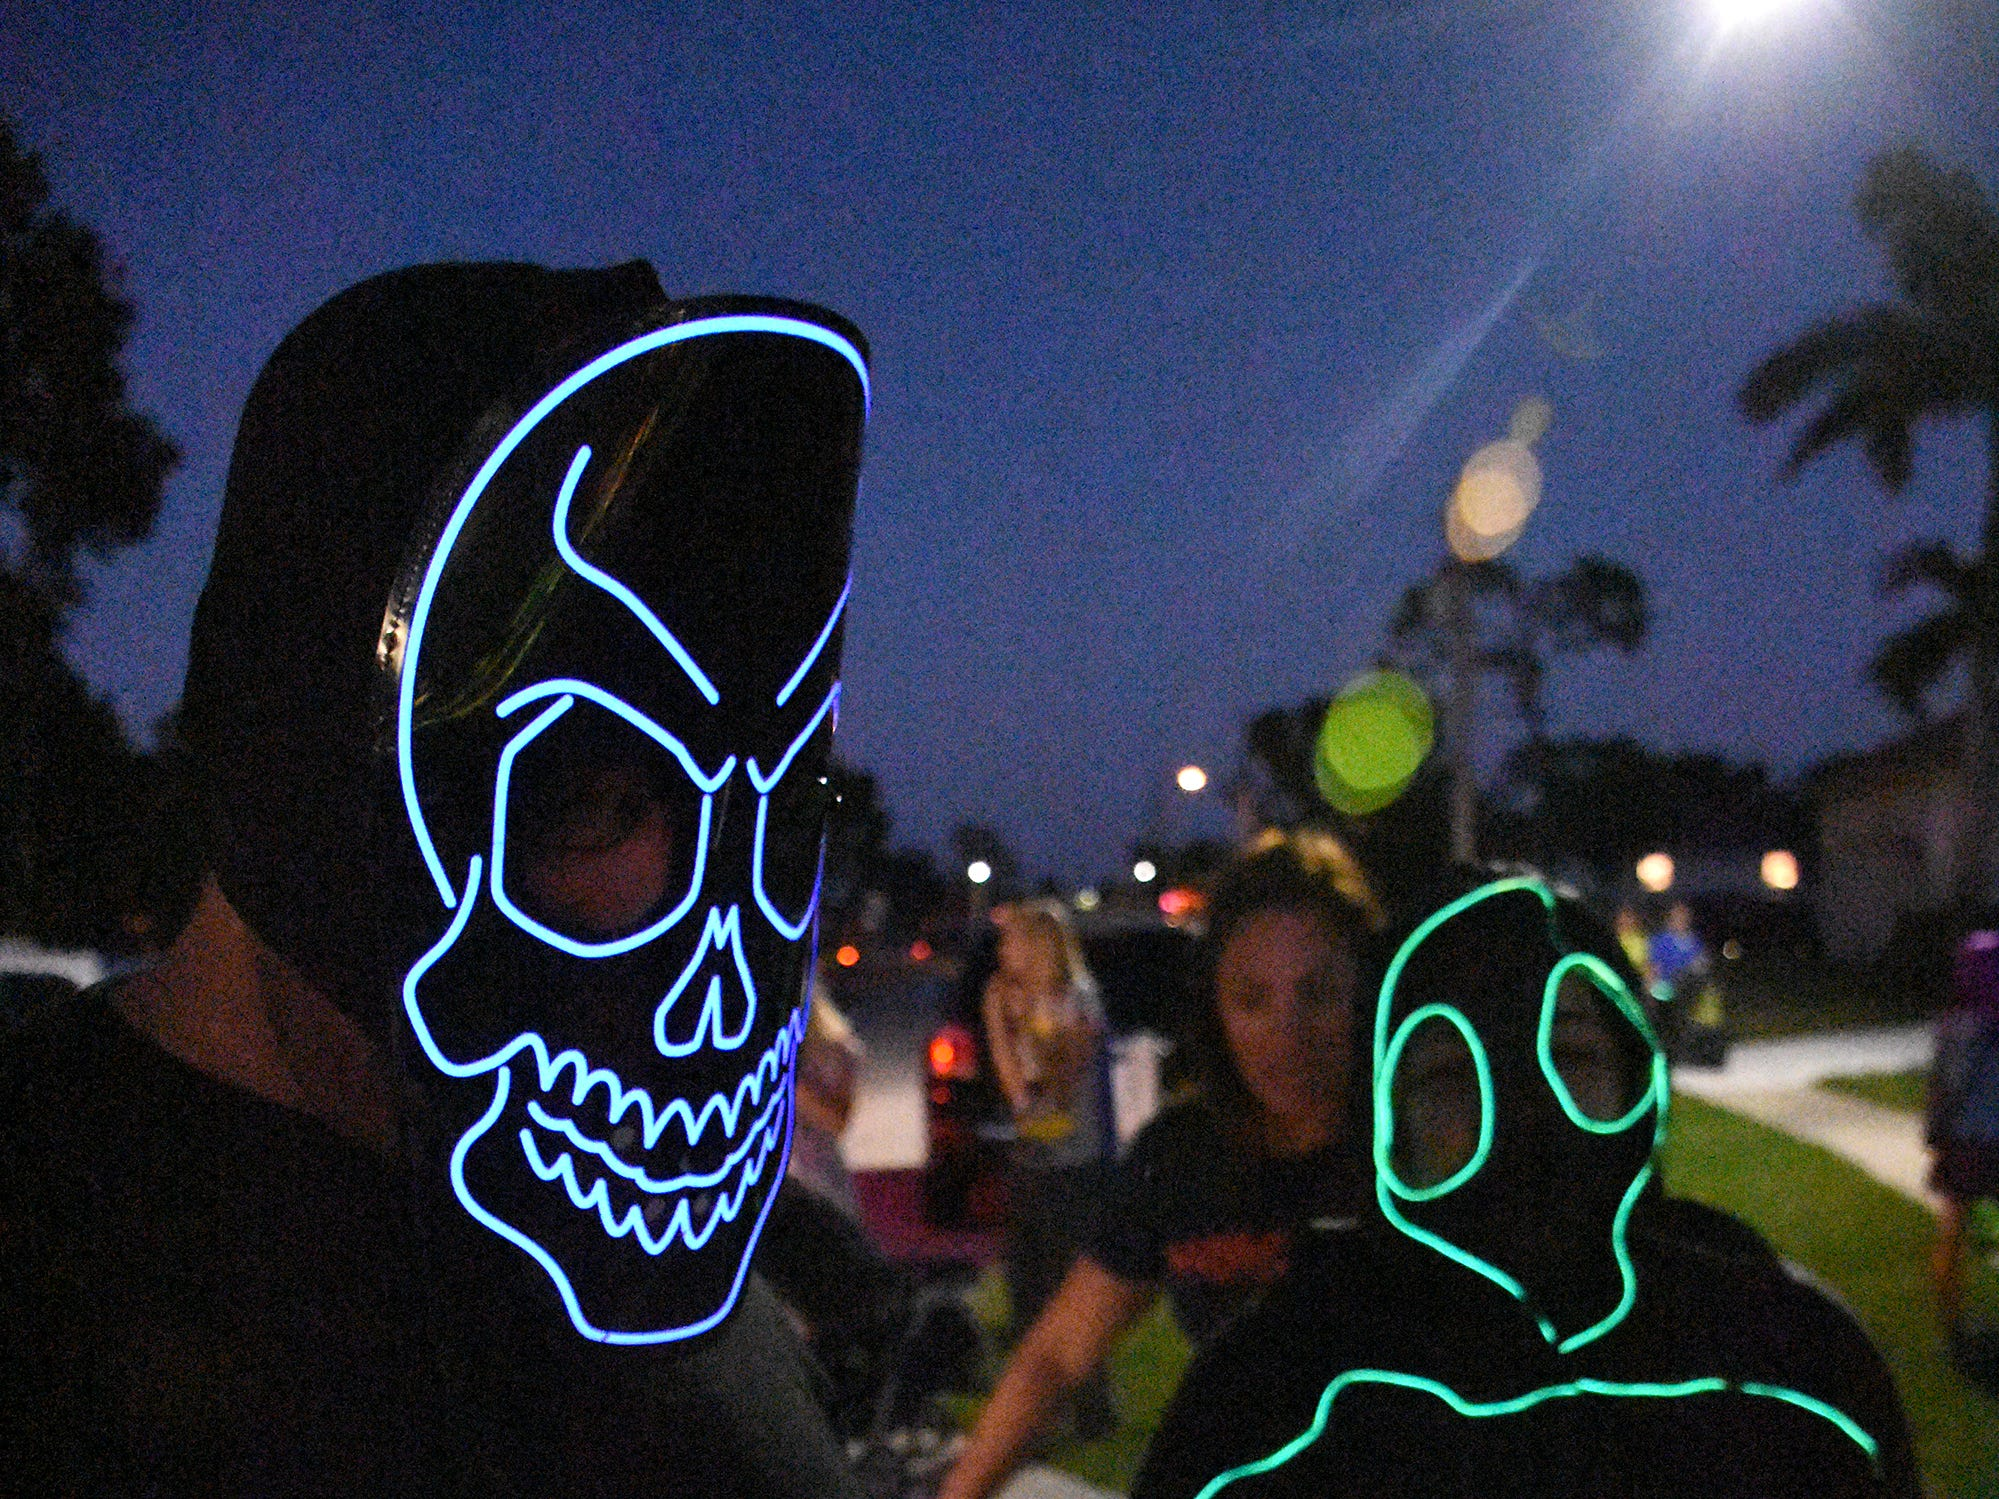 Art and Lisa Faradi show off their hi-tech lit up costumes. Wednesday evening, in a decades-old tradition, the streets around Tommie Barfield Elementary turned into a trick or treatin' block party.